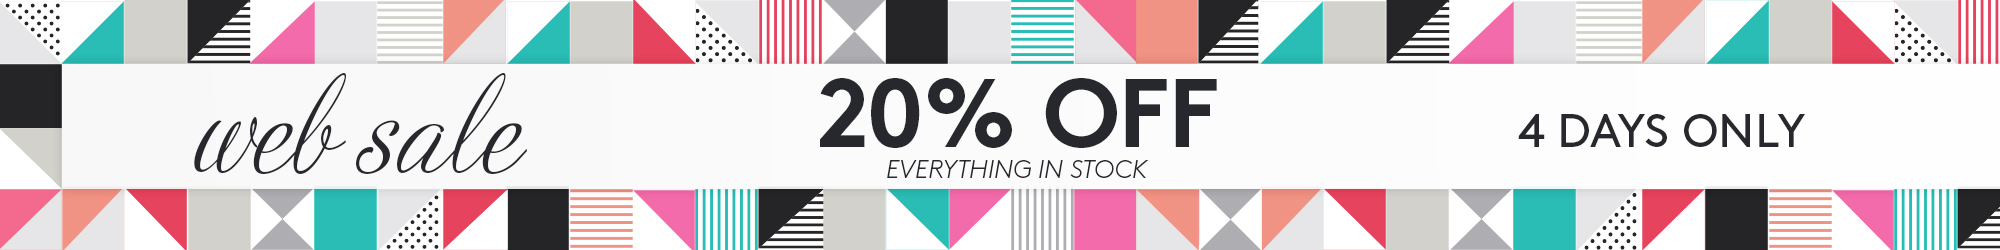 4 Day Web Sale - 20% Off Everything In Stock*